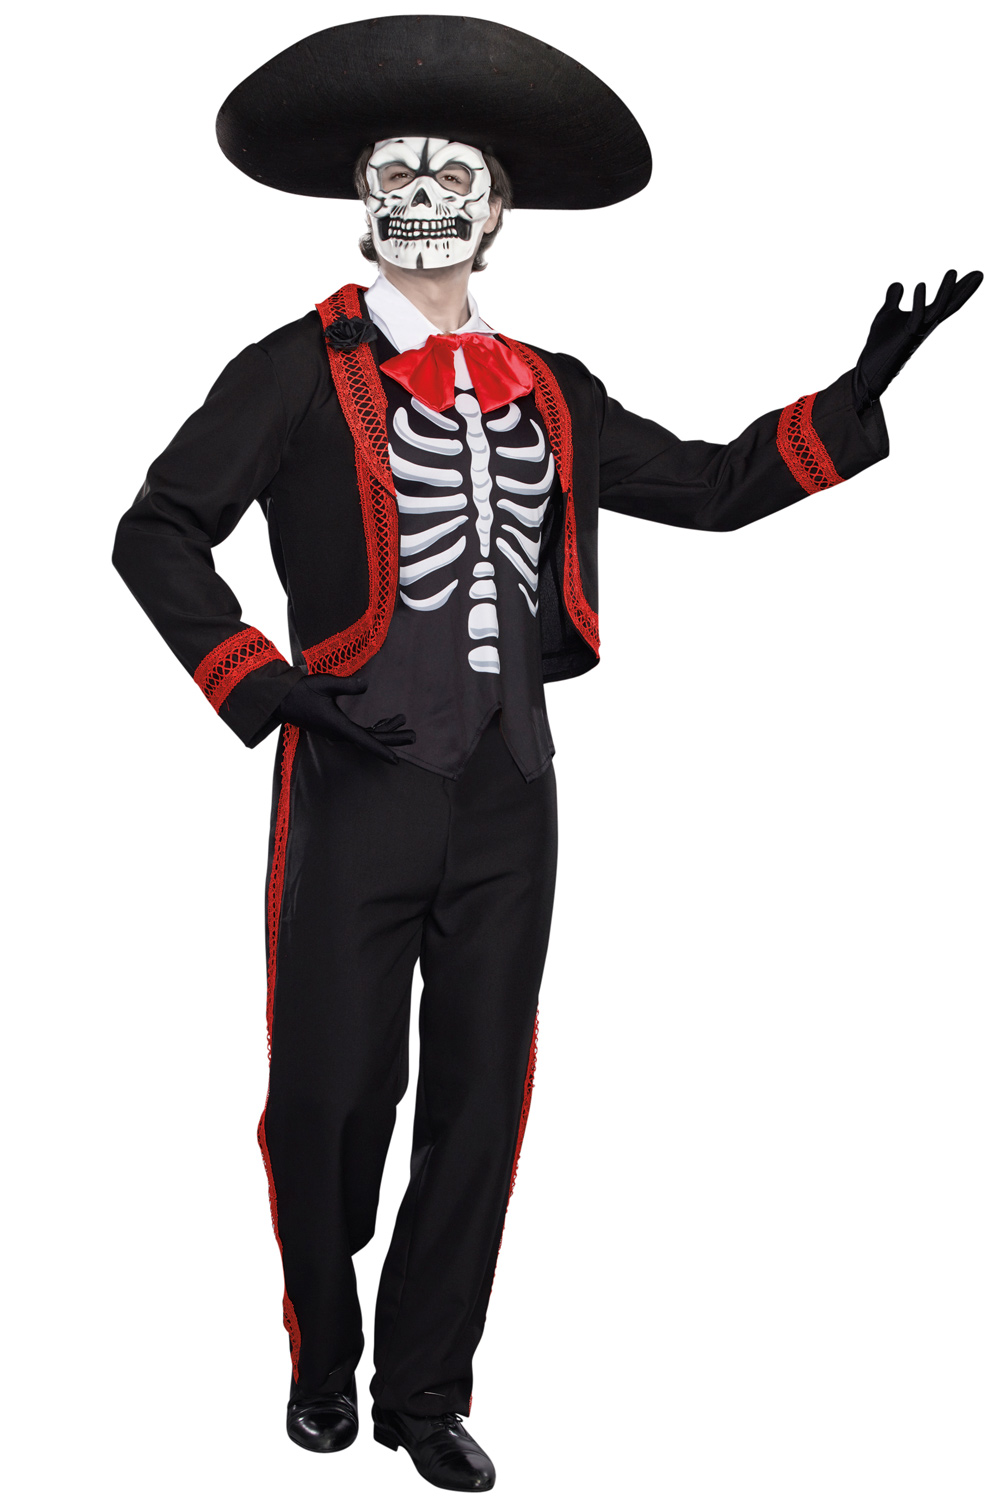 Mariachi Costume Adult Day of the Dead Dia de los Muertos Halloween Fancy Dress